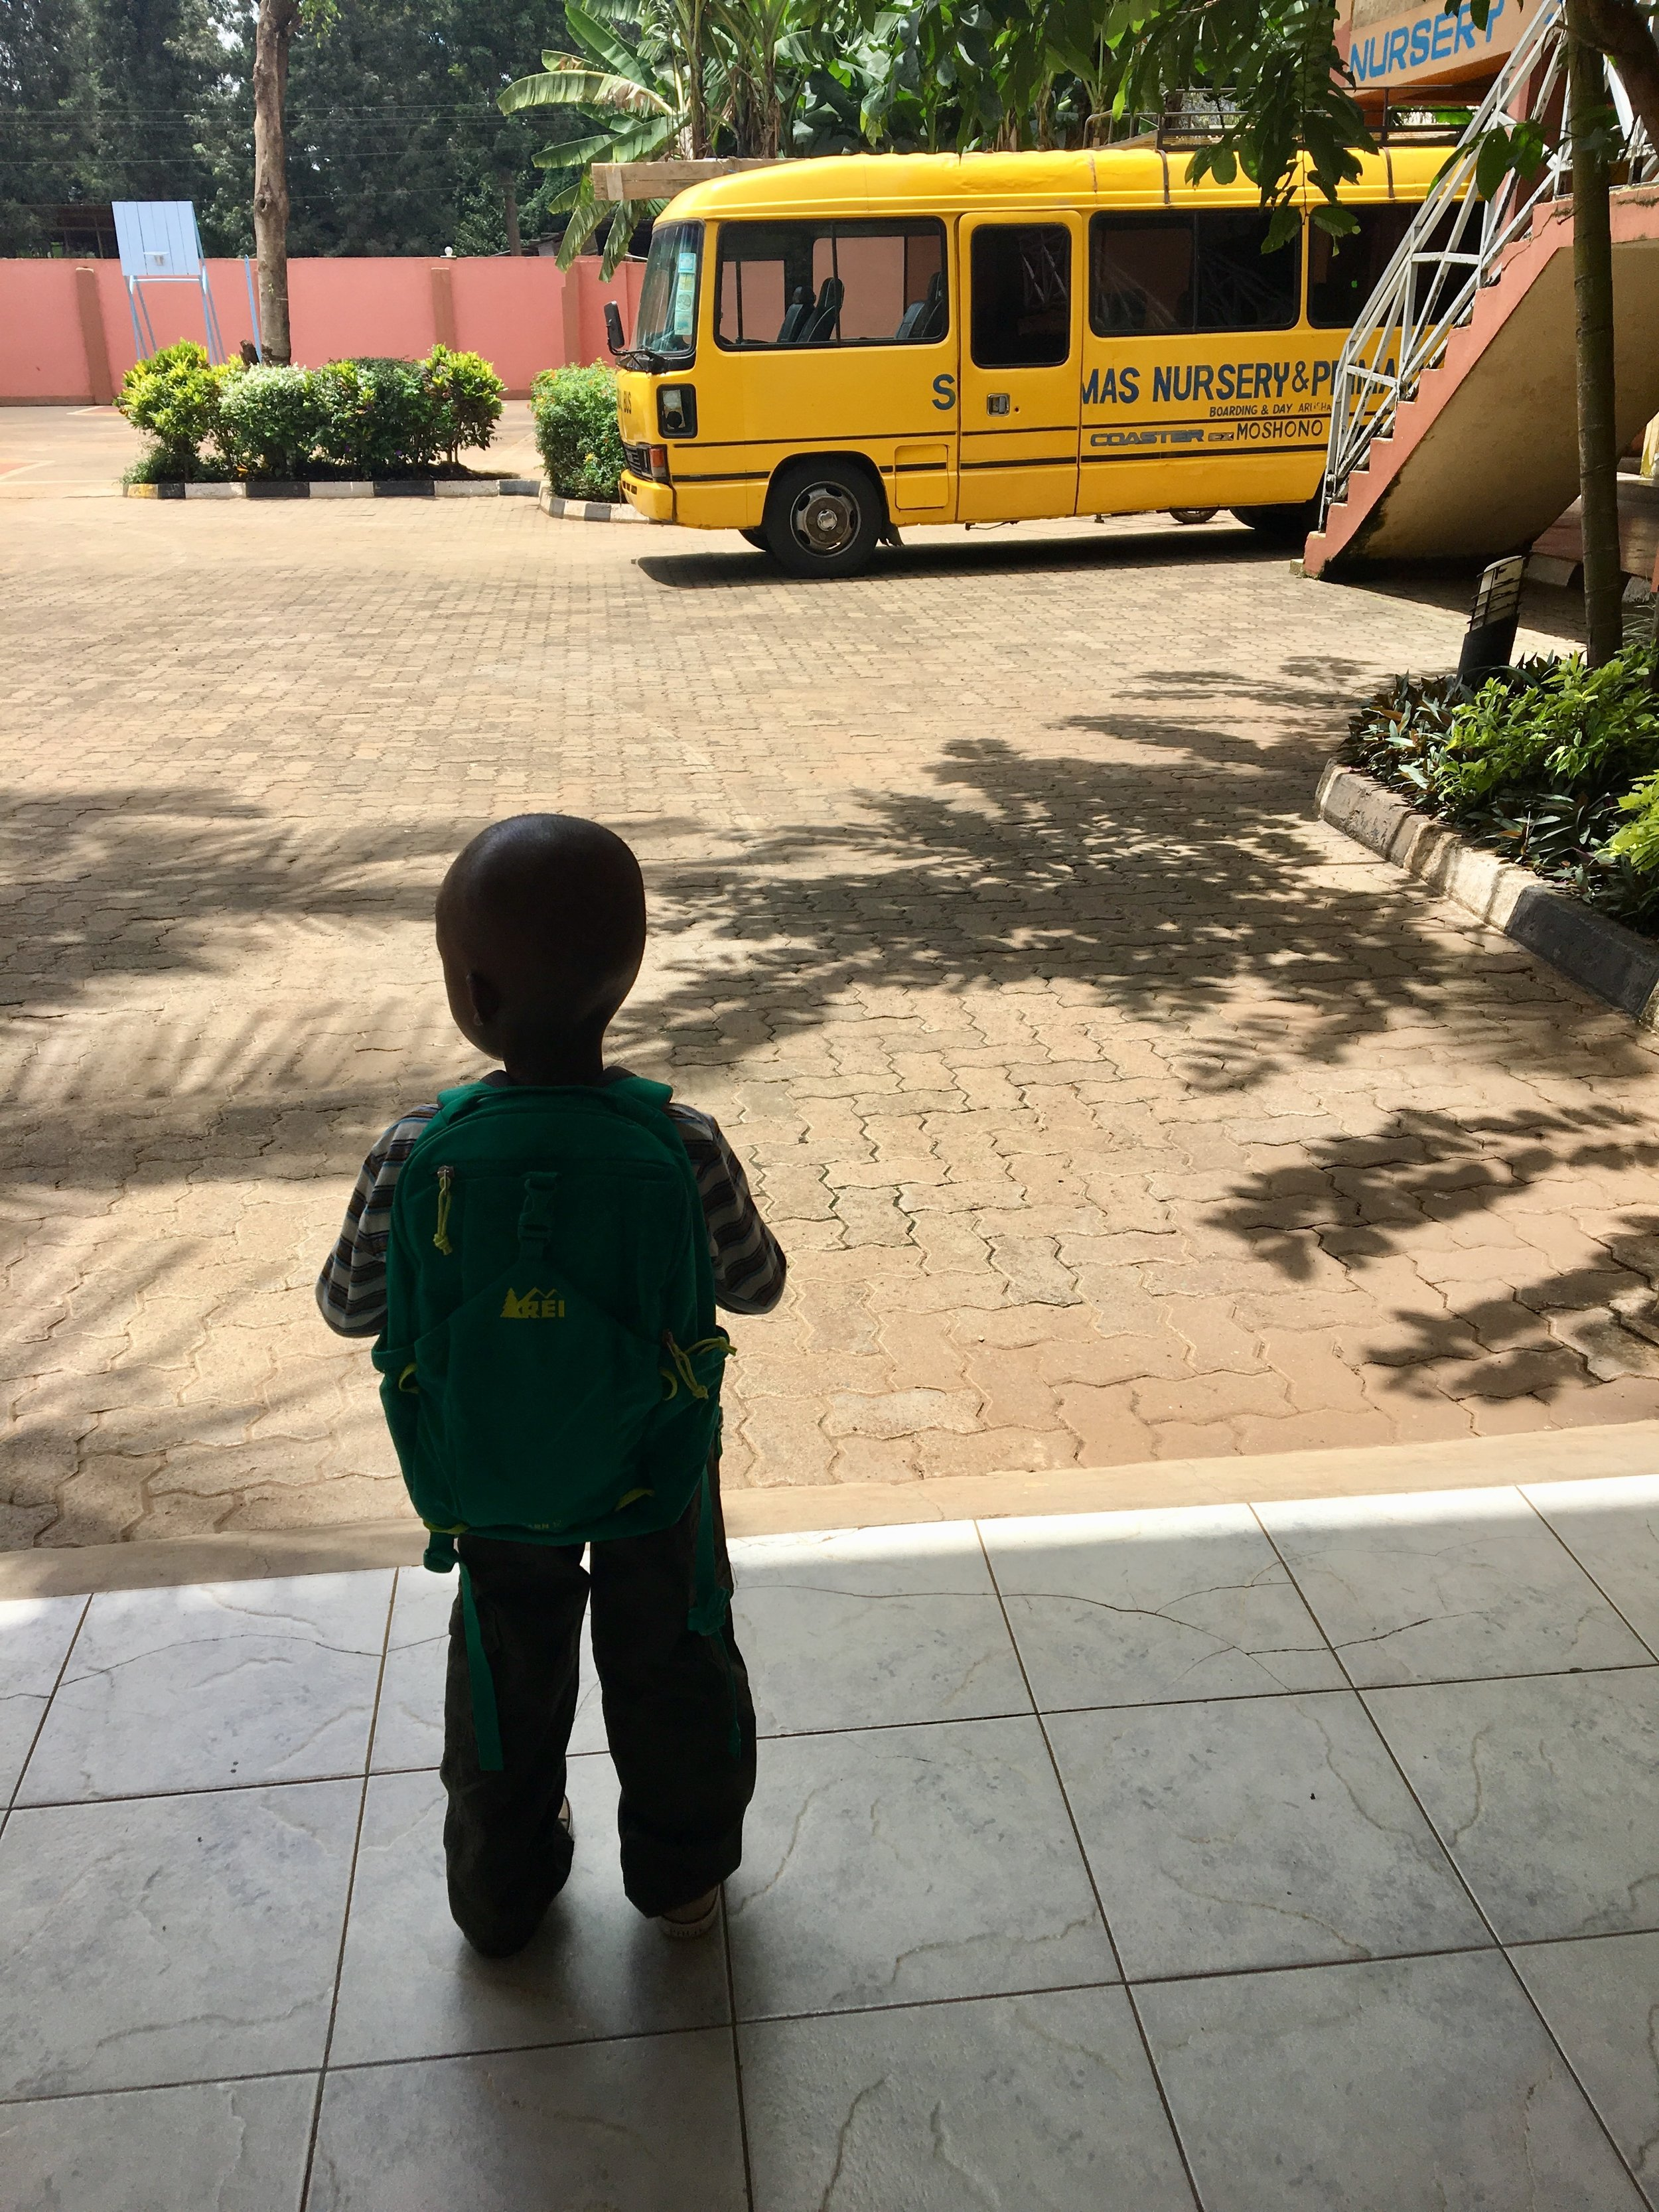 His first day of school. I always imagined his first day of school, but not like this. It wasn't supposed to be in Africa, it was supposed to be in Colorado. Dropping him off at school was one of the hardest days of my life, but we knew it was what was best for him.